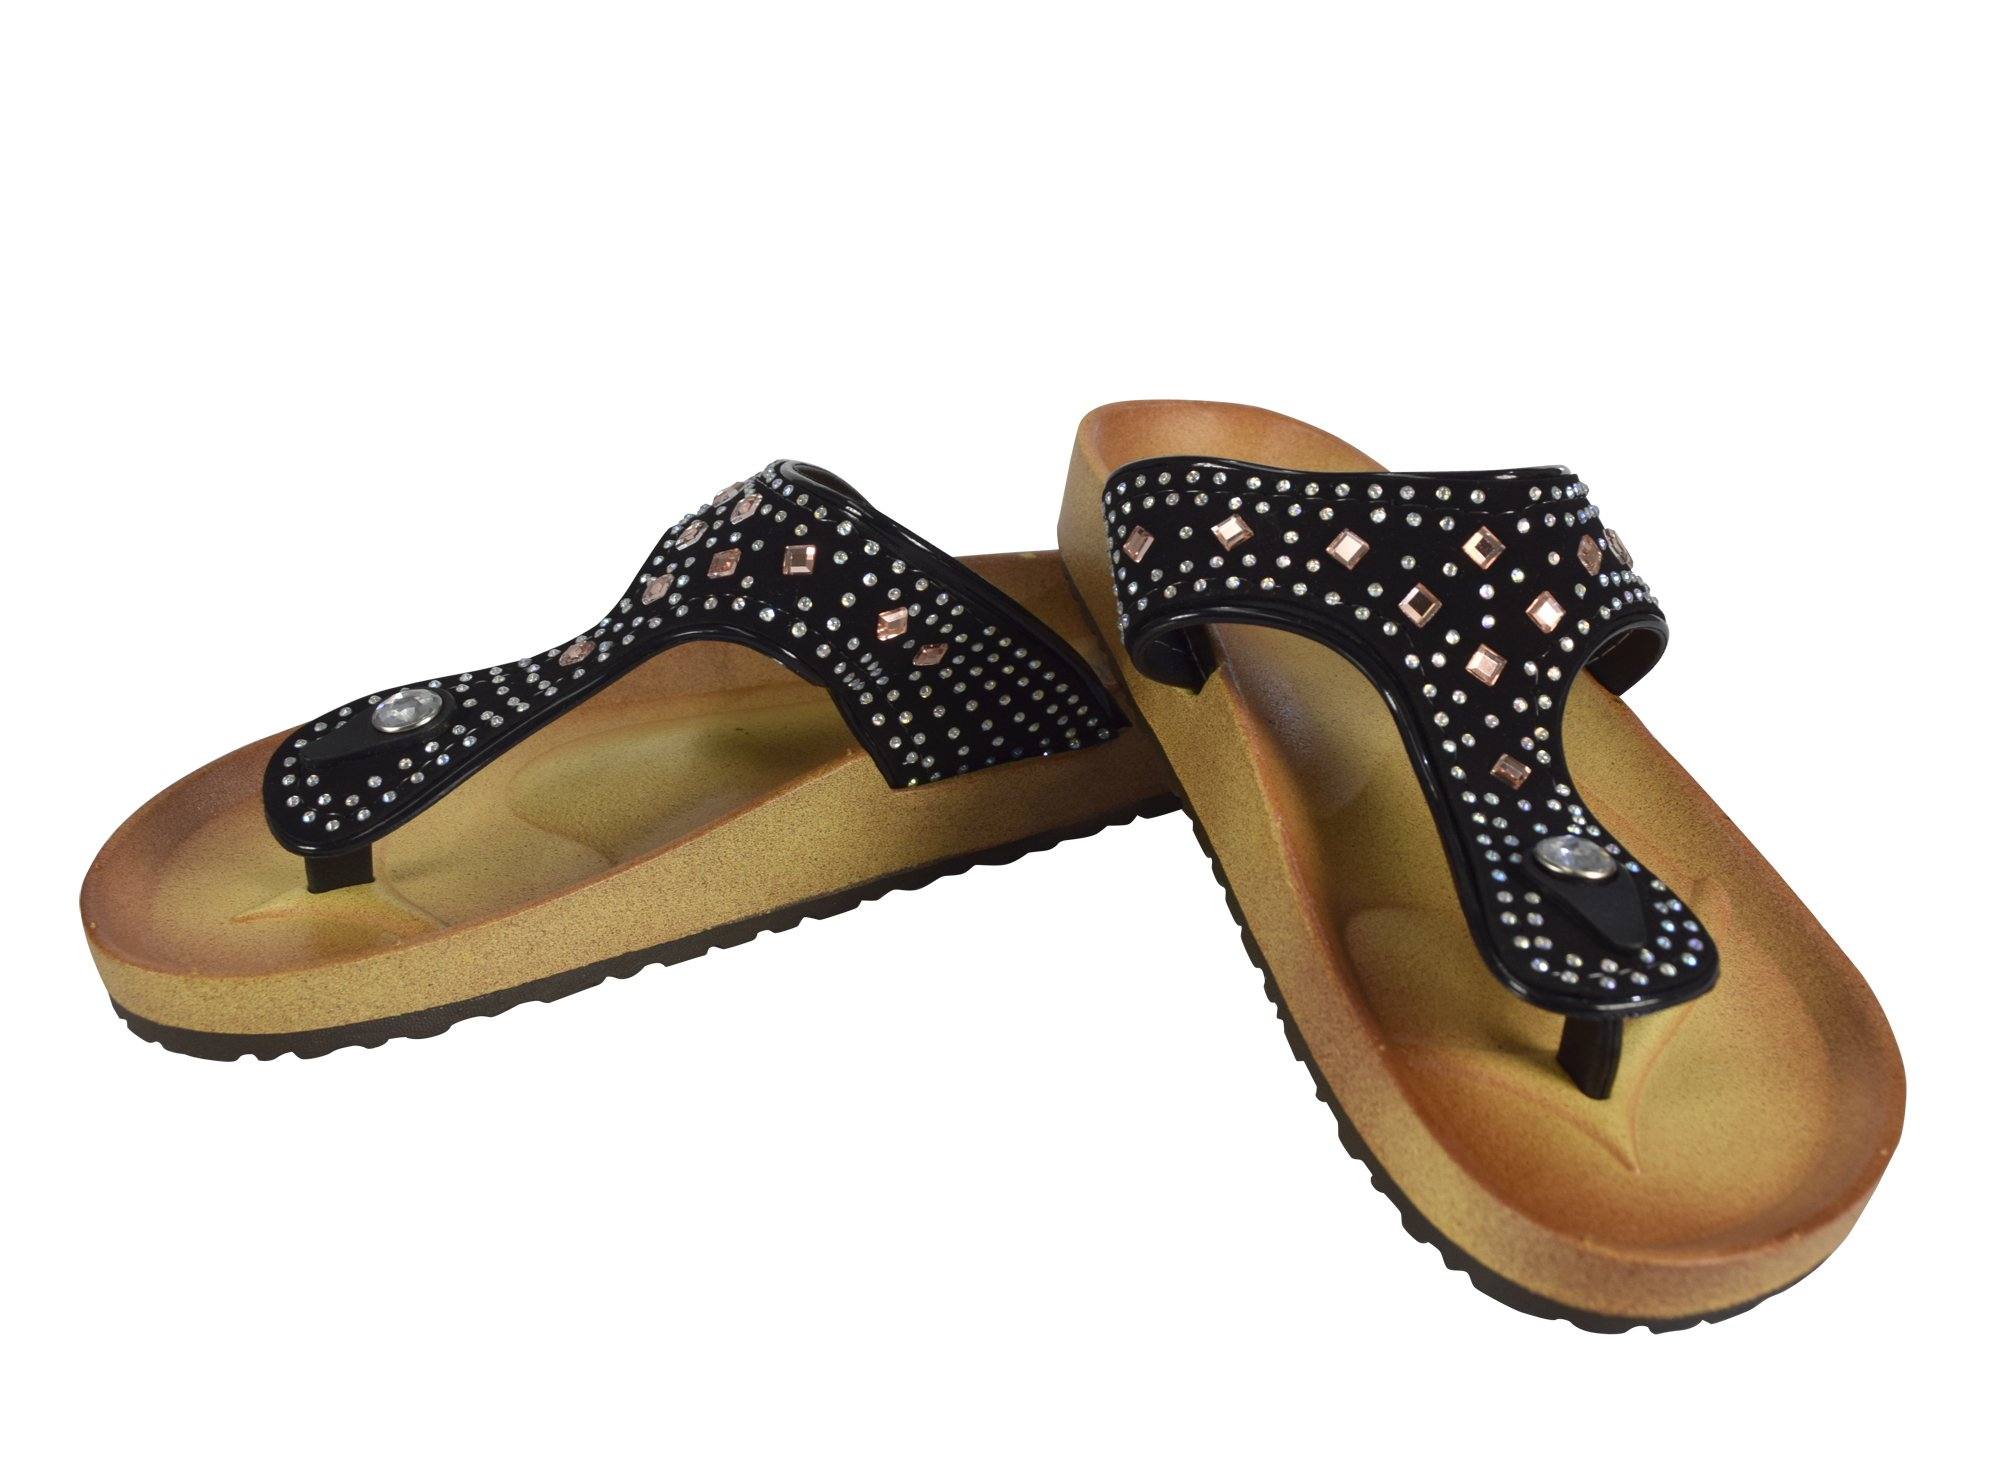 Peach Couture Womens Rhinestone Embellished Thong Flat Slides Summer Sandals (Onyx 10)